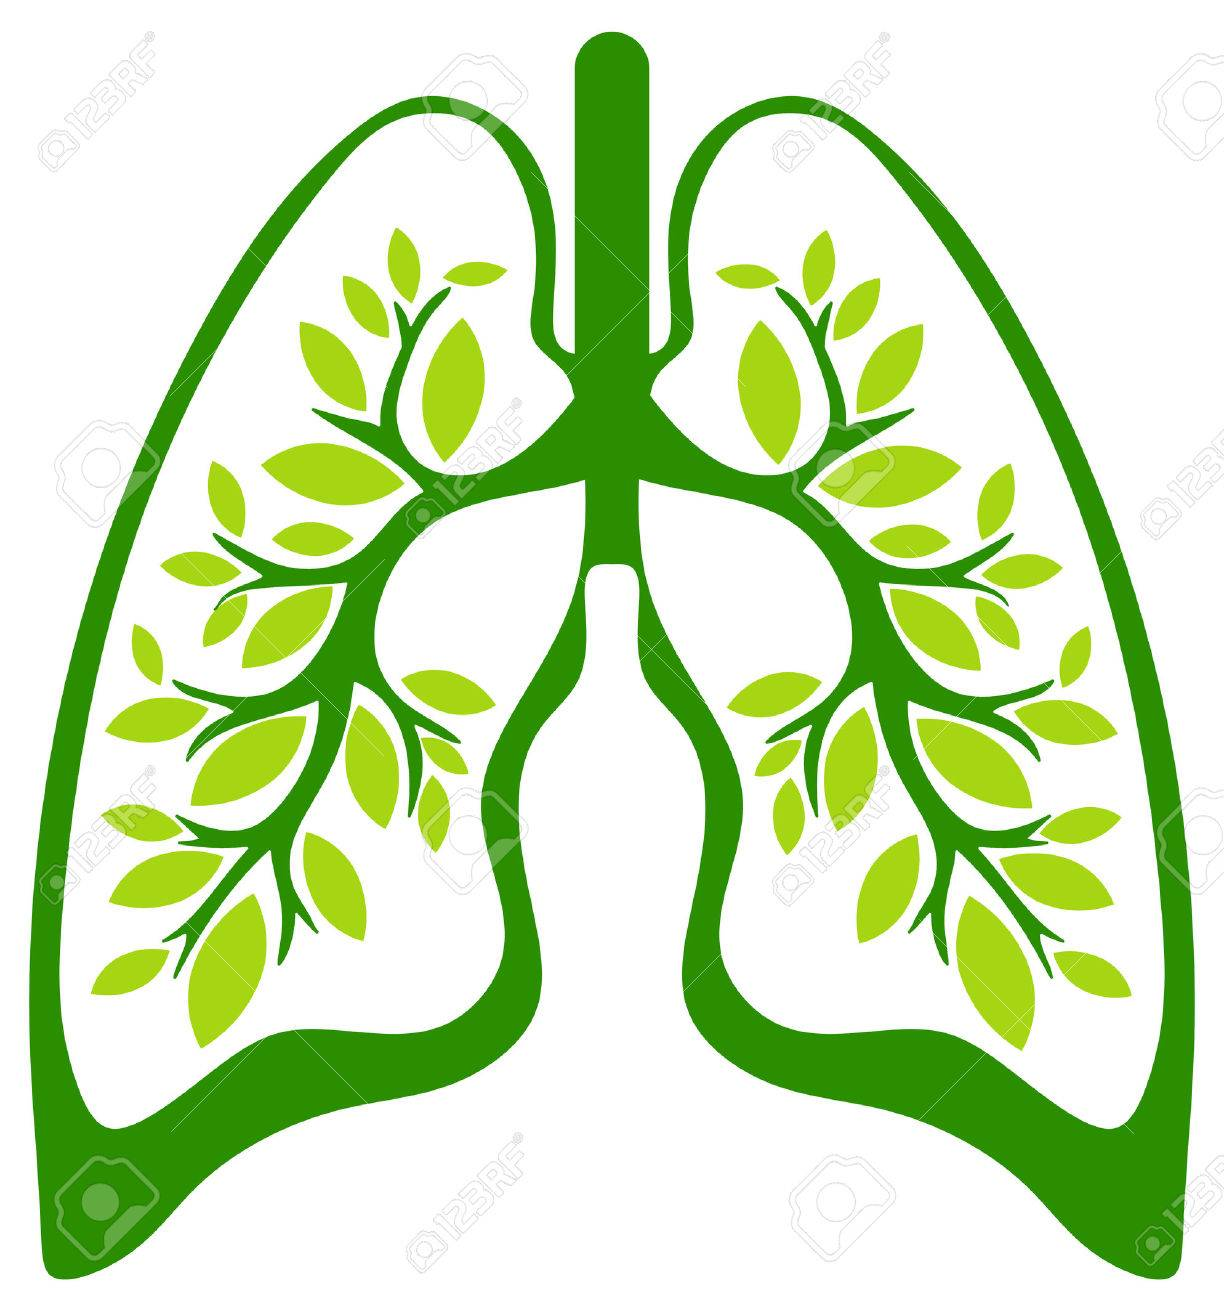 the green lungs - 27048187